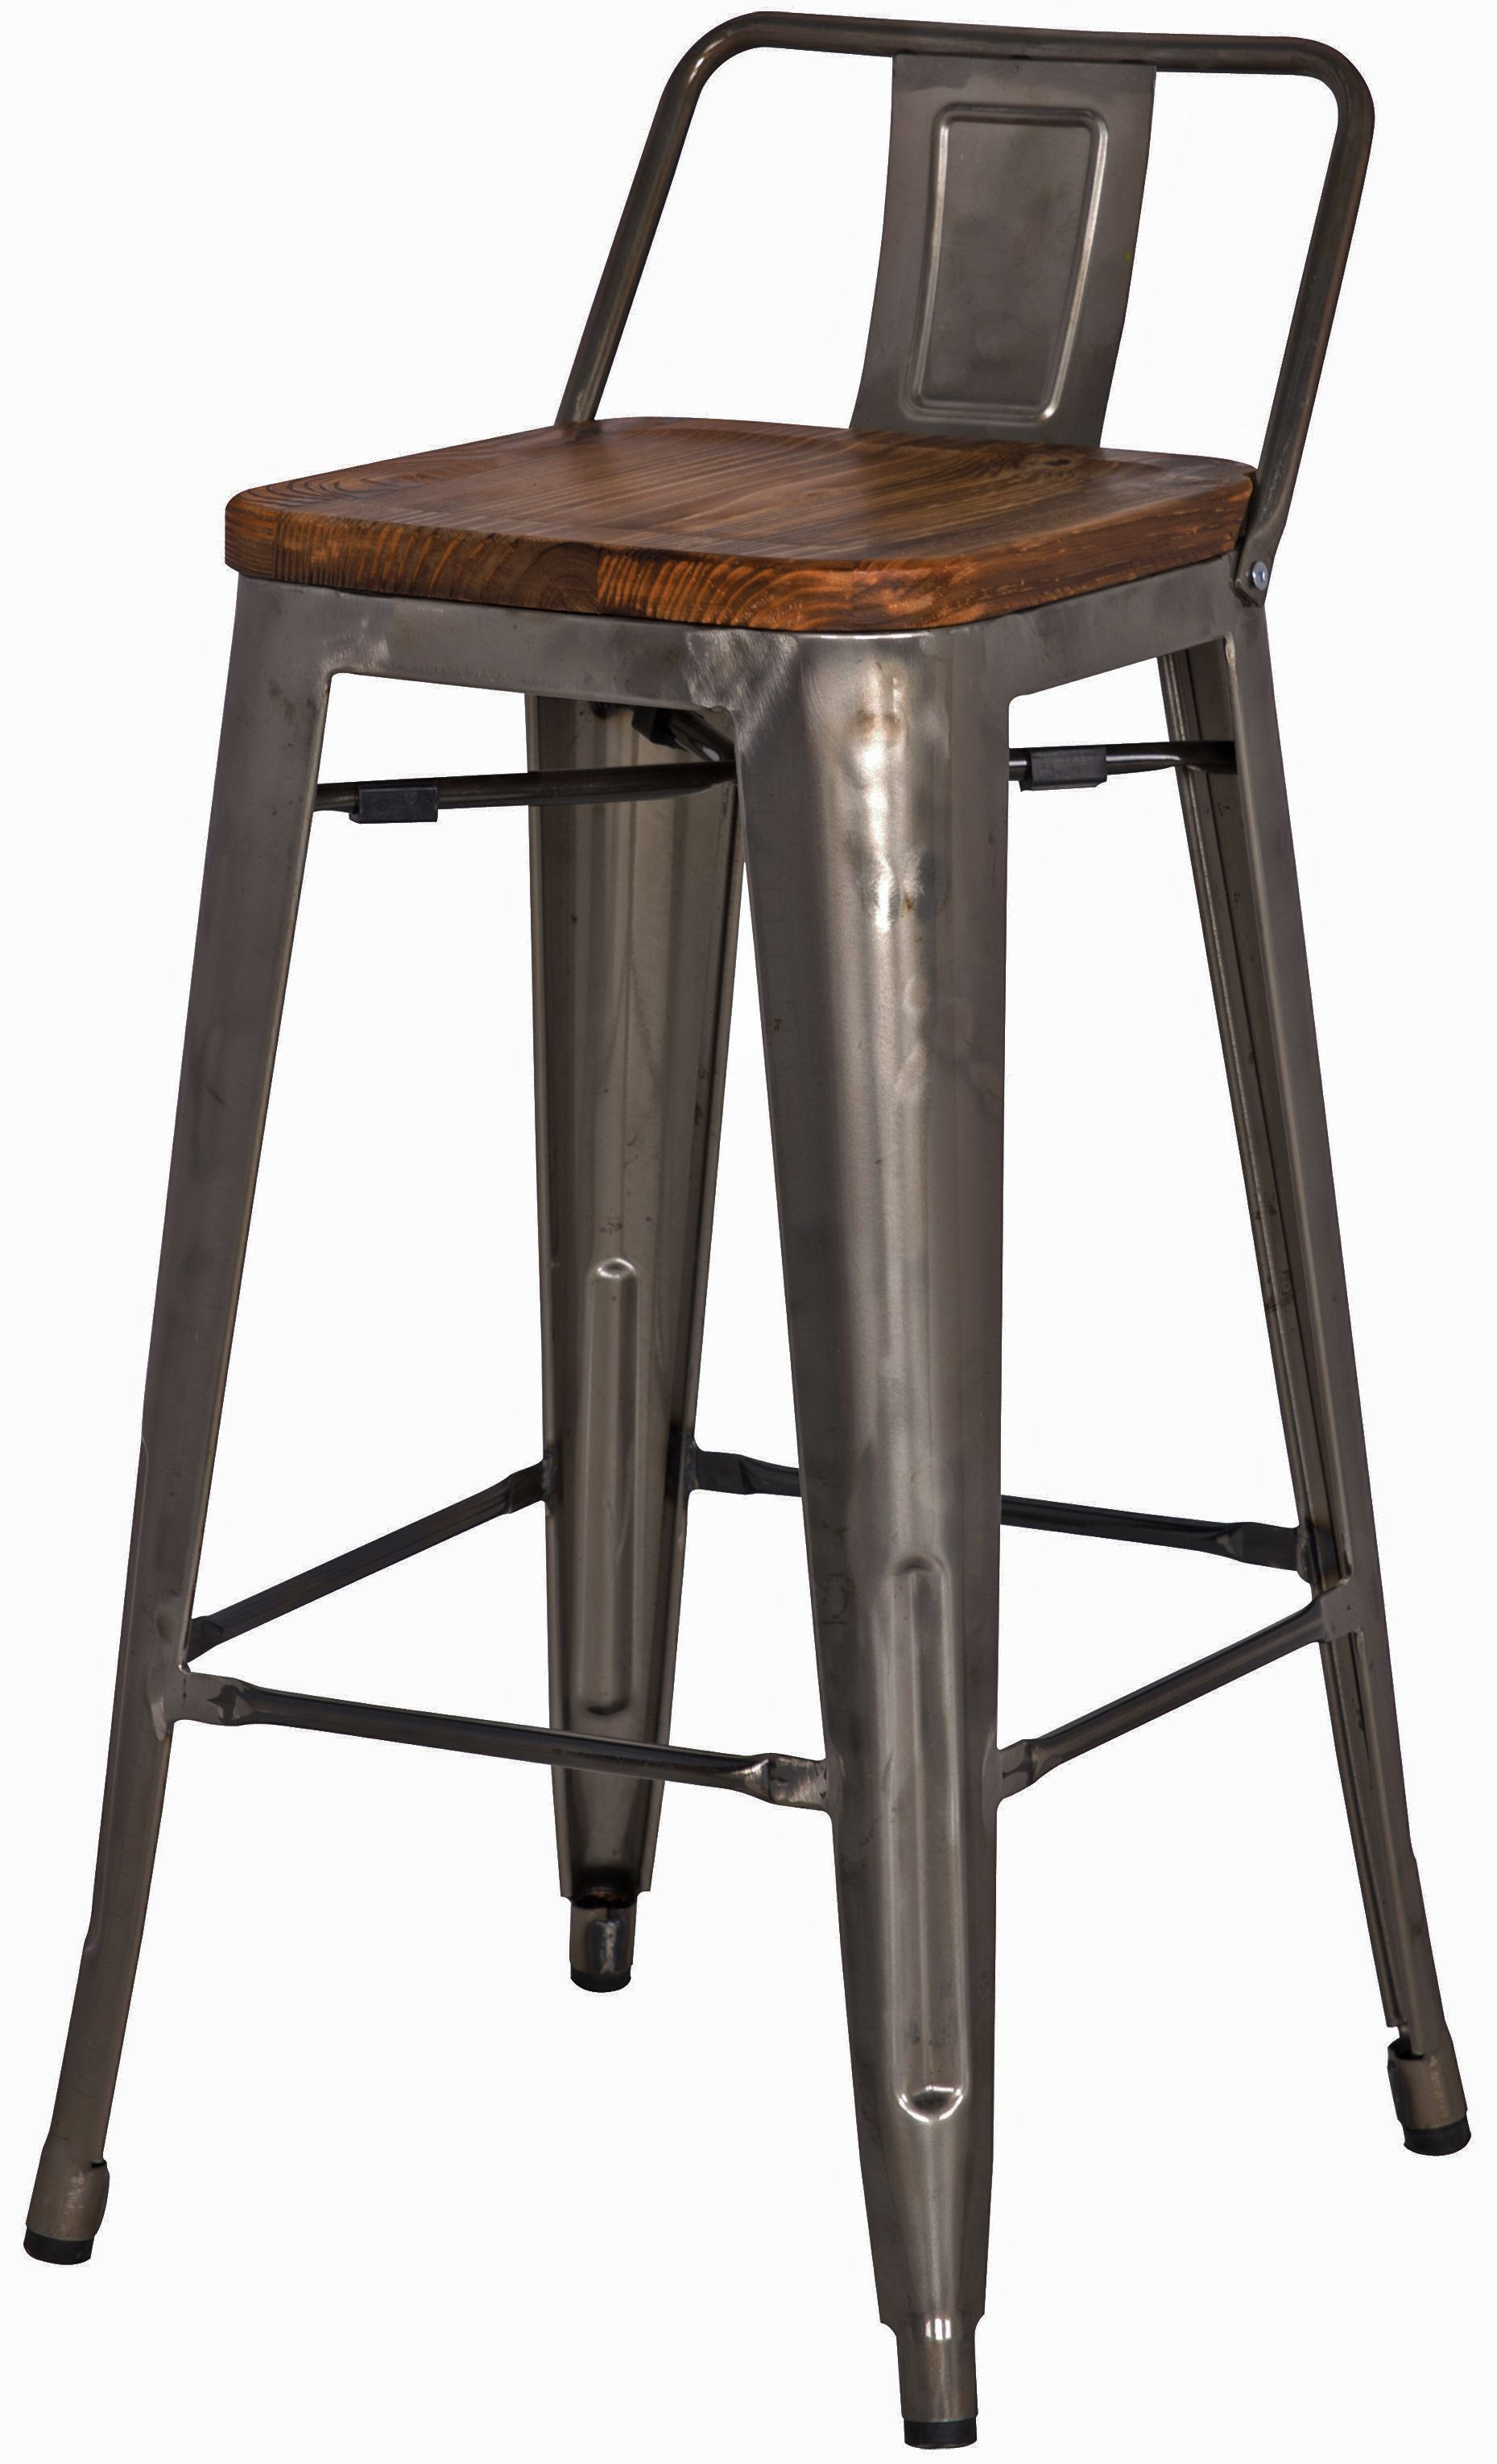 Industrial Bar Stools With Backs Metropolis Low Back Counter Stool Wood Seat Gunmetal